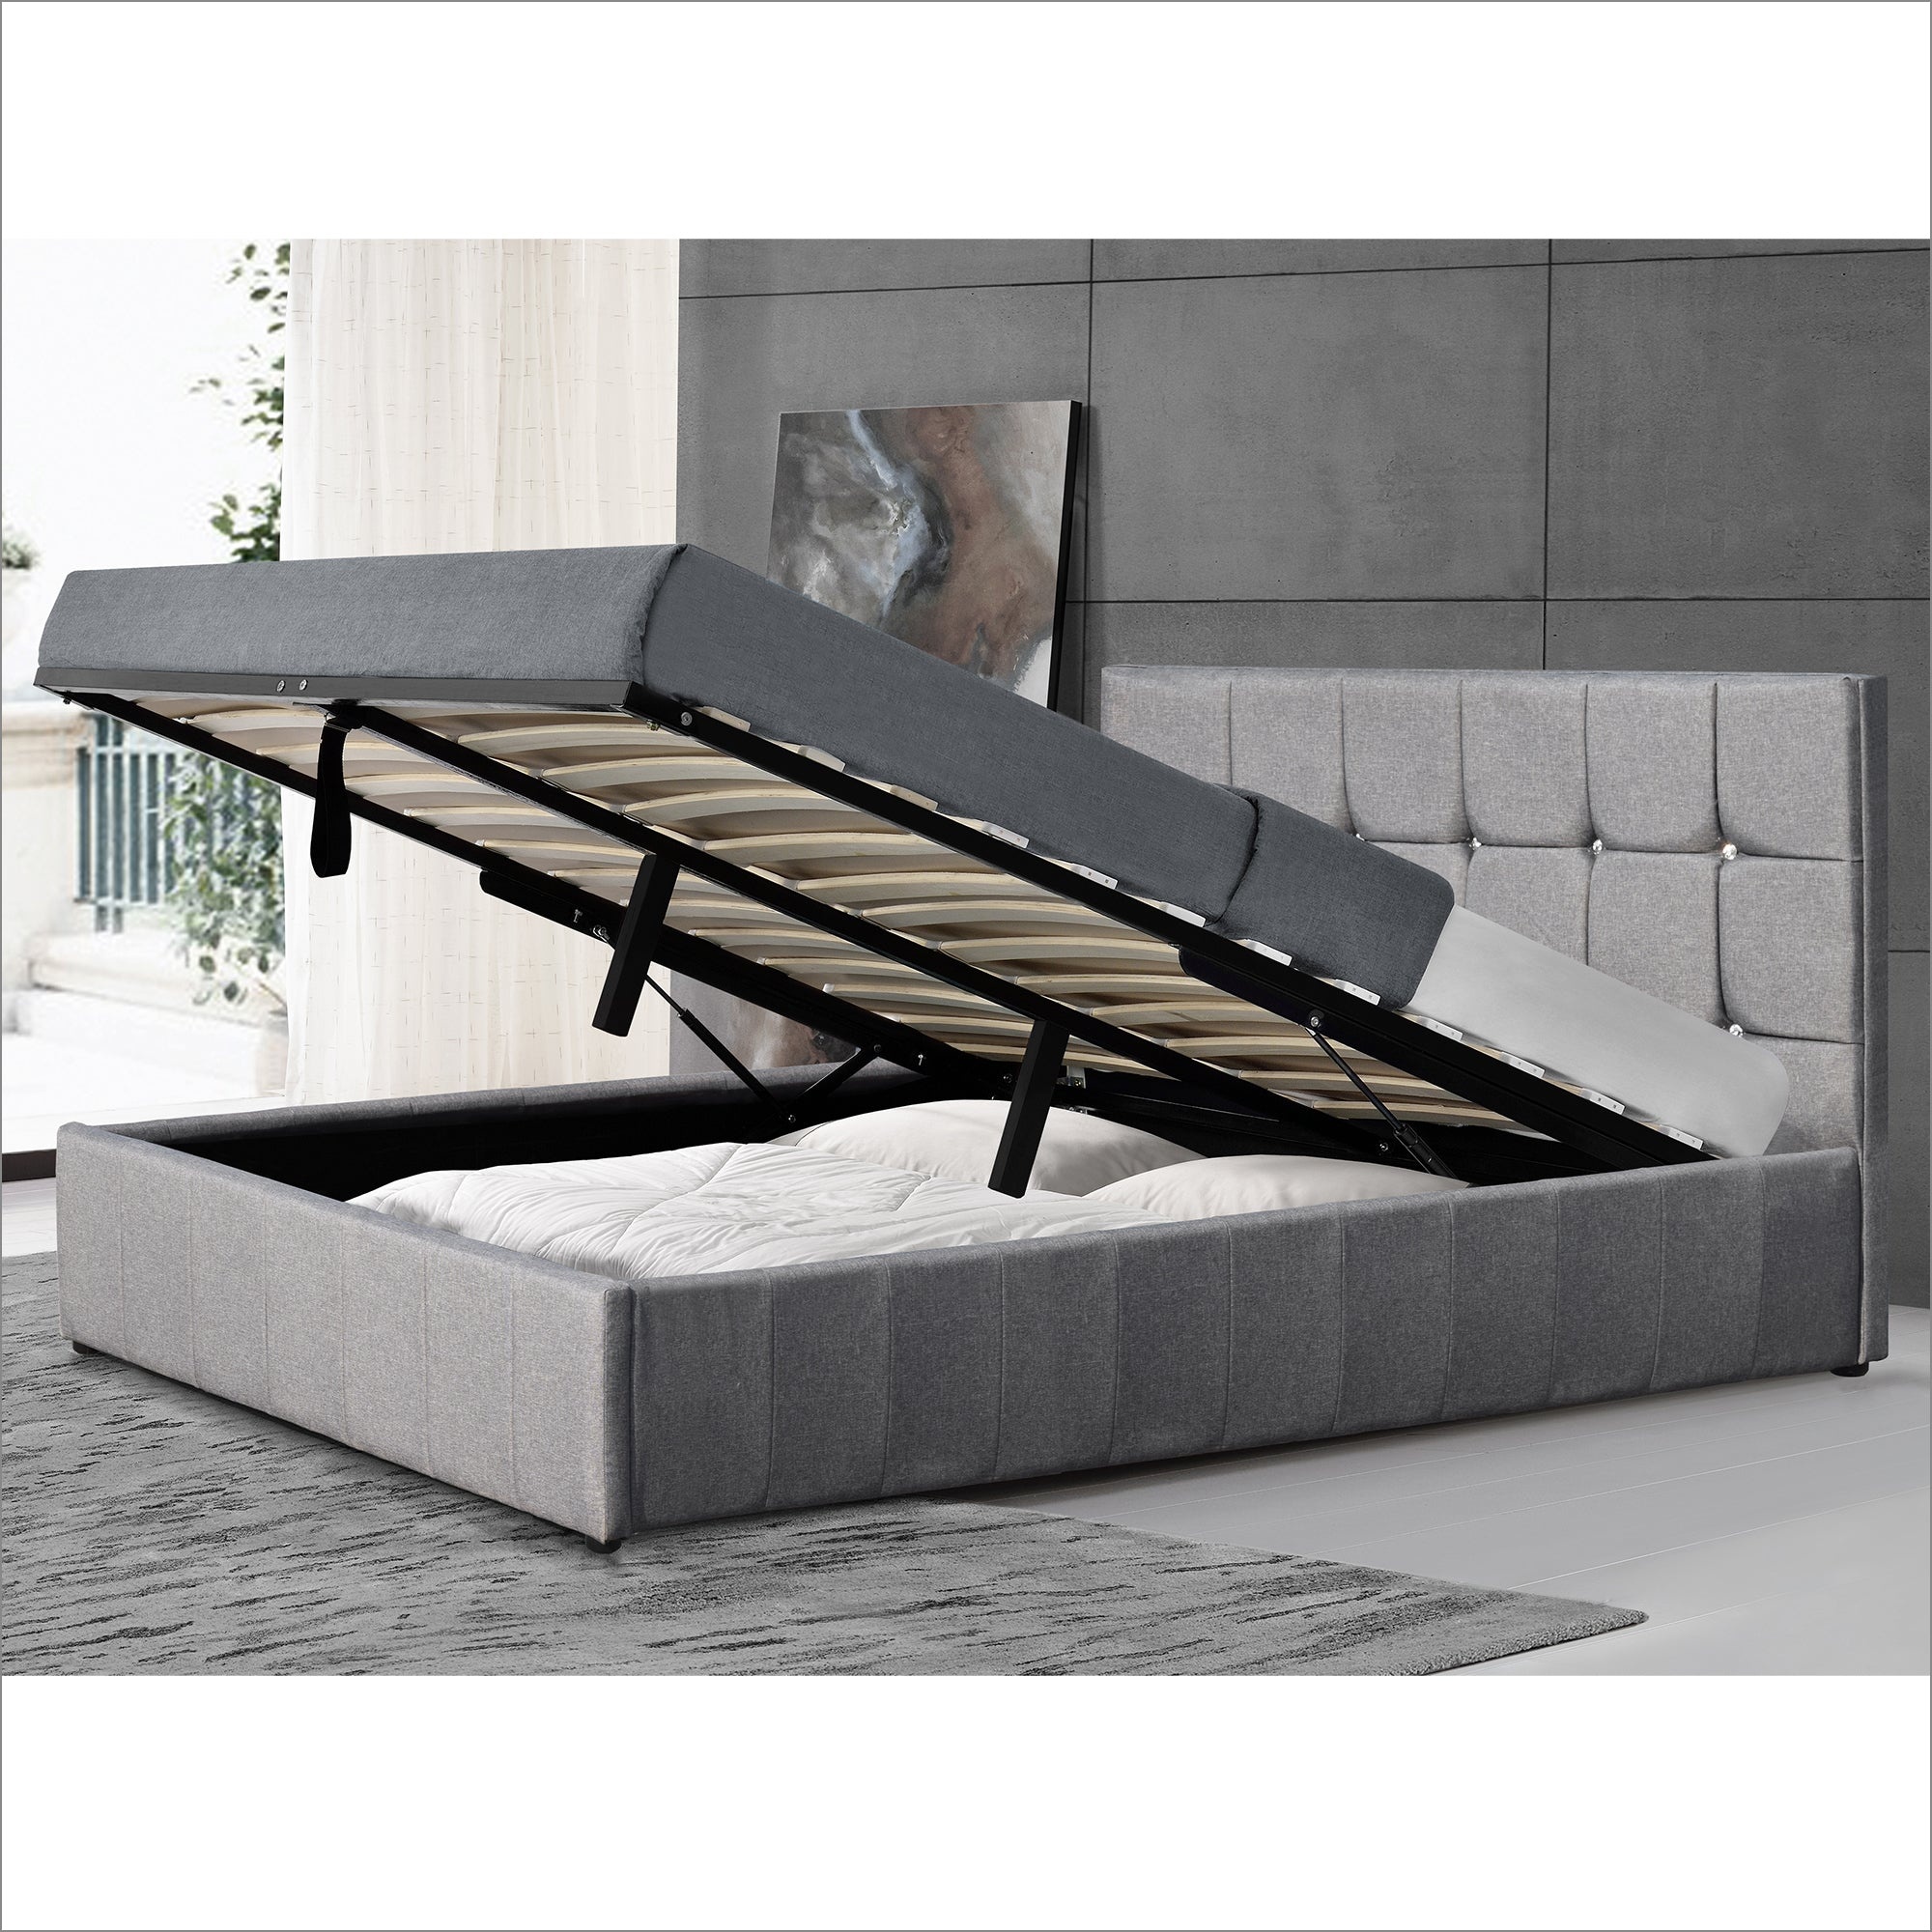 mira gas lift storage bed ottoman bed with diamante studded headboard grey fabric